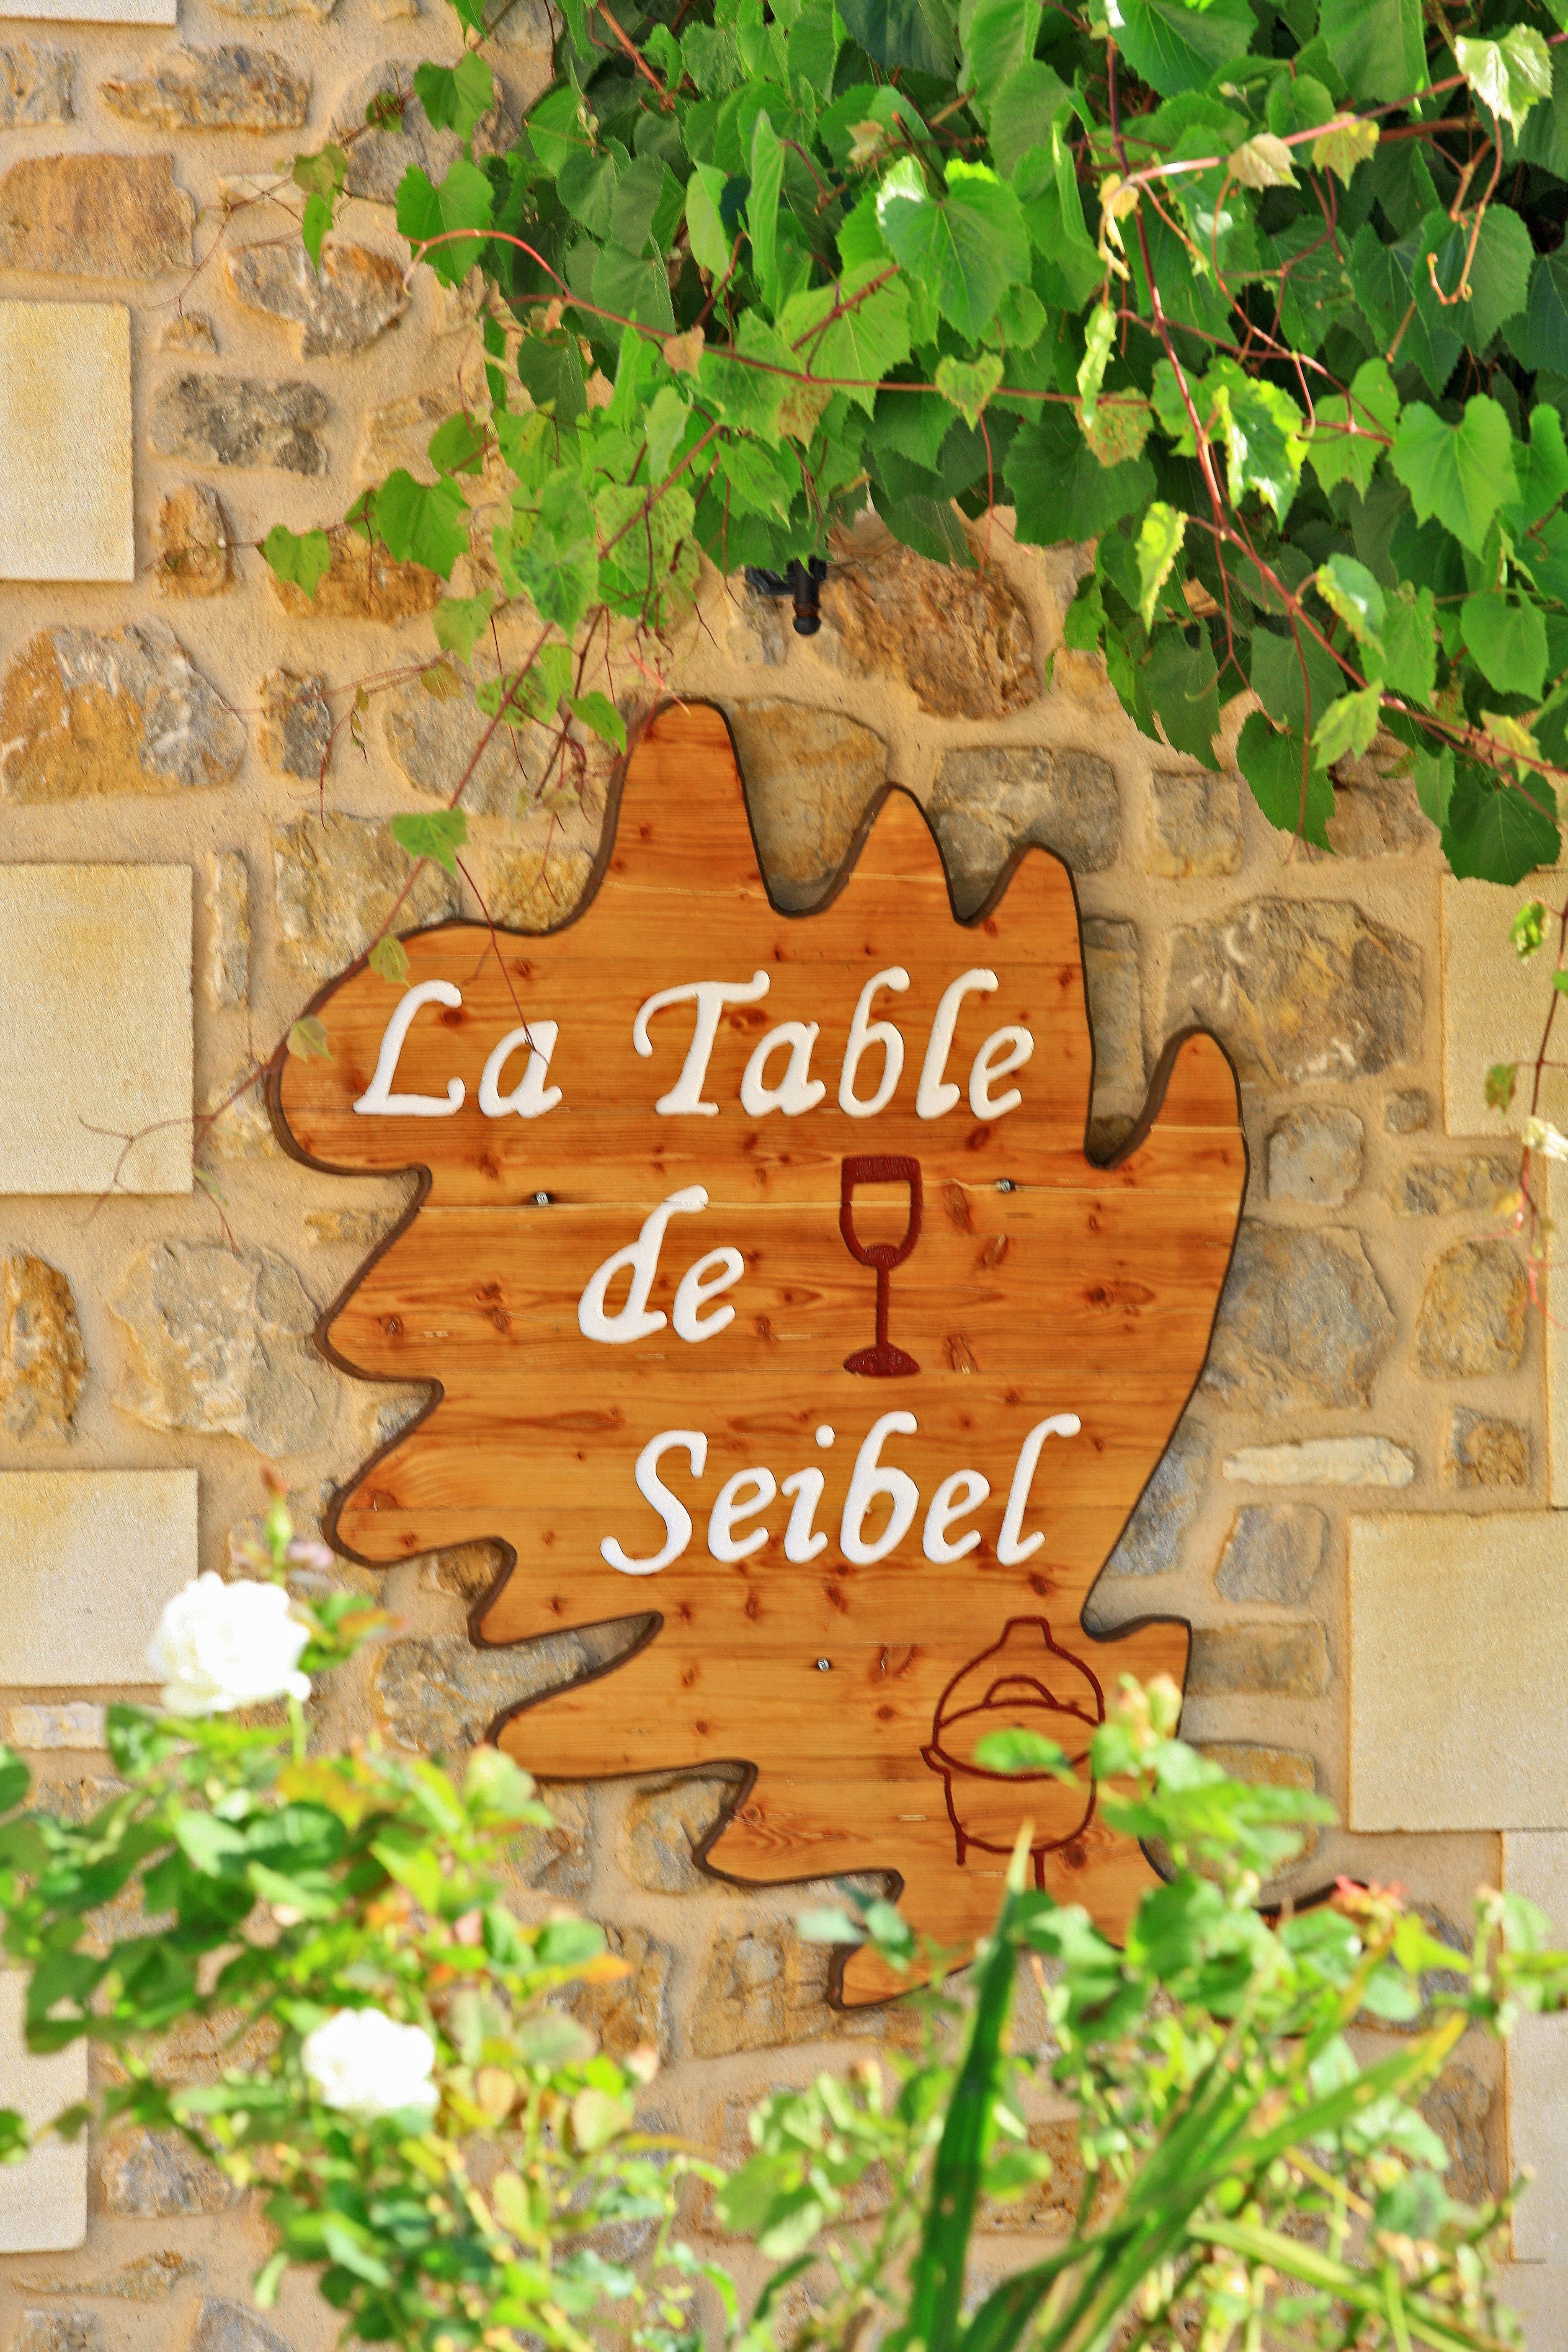 IMG 3535 - New manager at La Table de Seibel